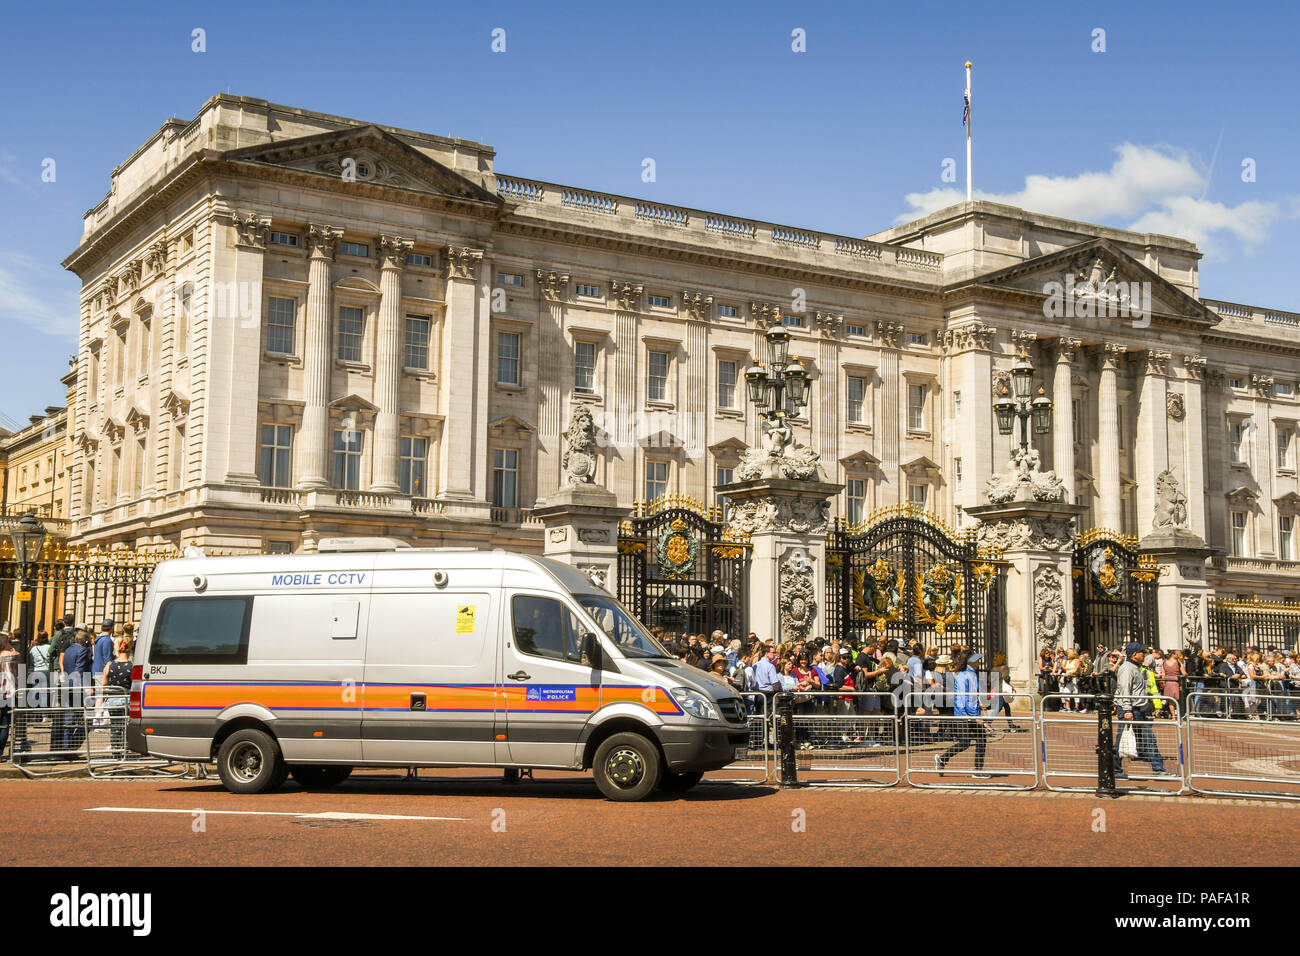 159a310de41a7c Metropolitan Police video surveillance van outside Buckingham Palace for  the Changing of the Guard ceremony -